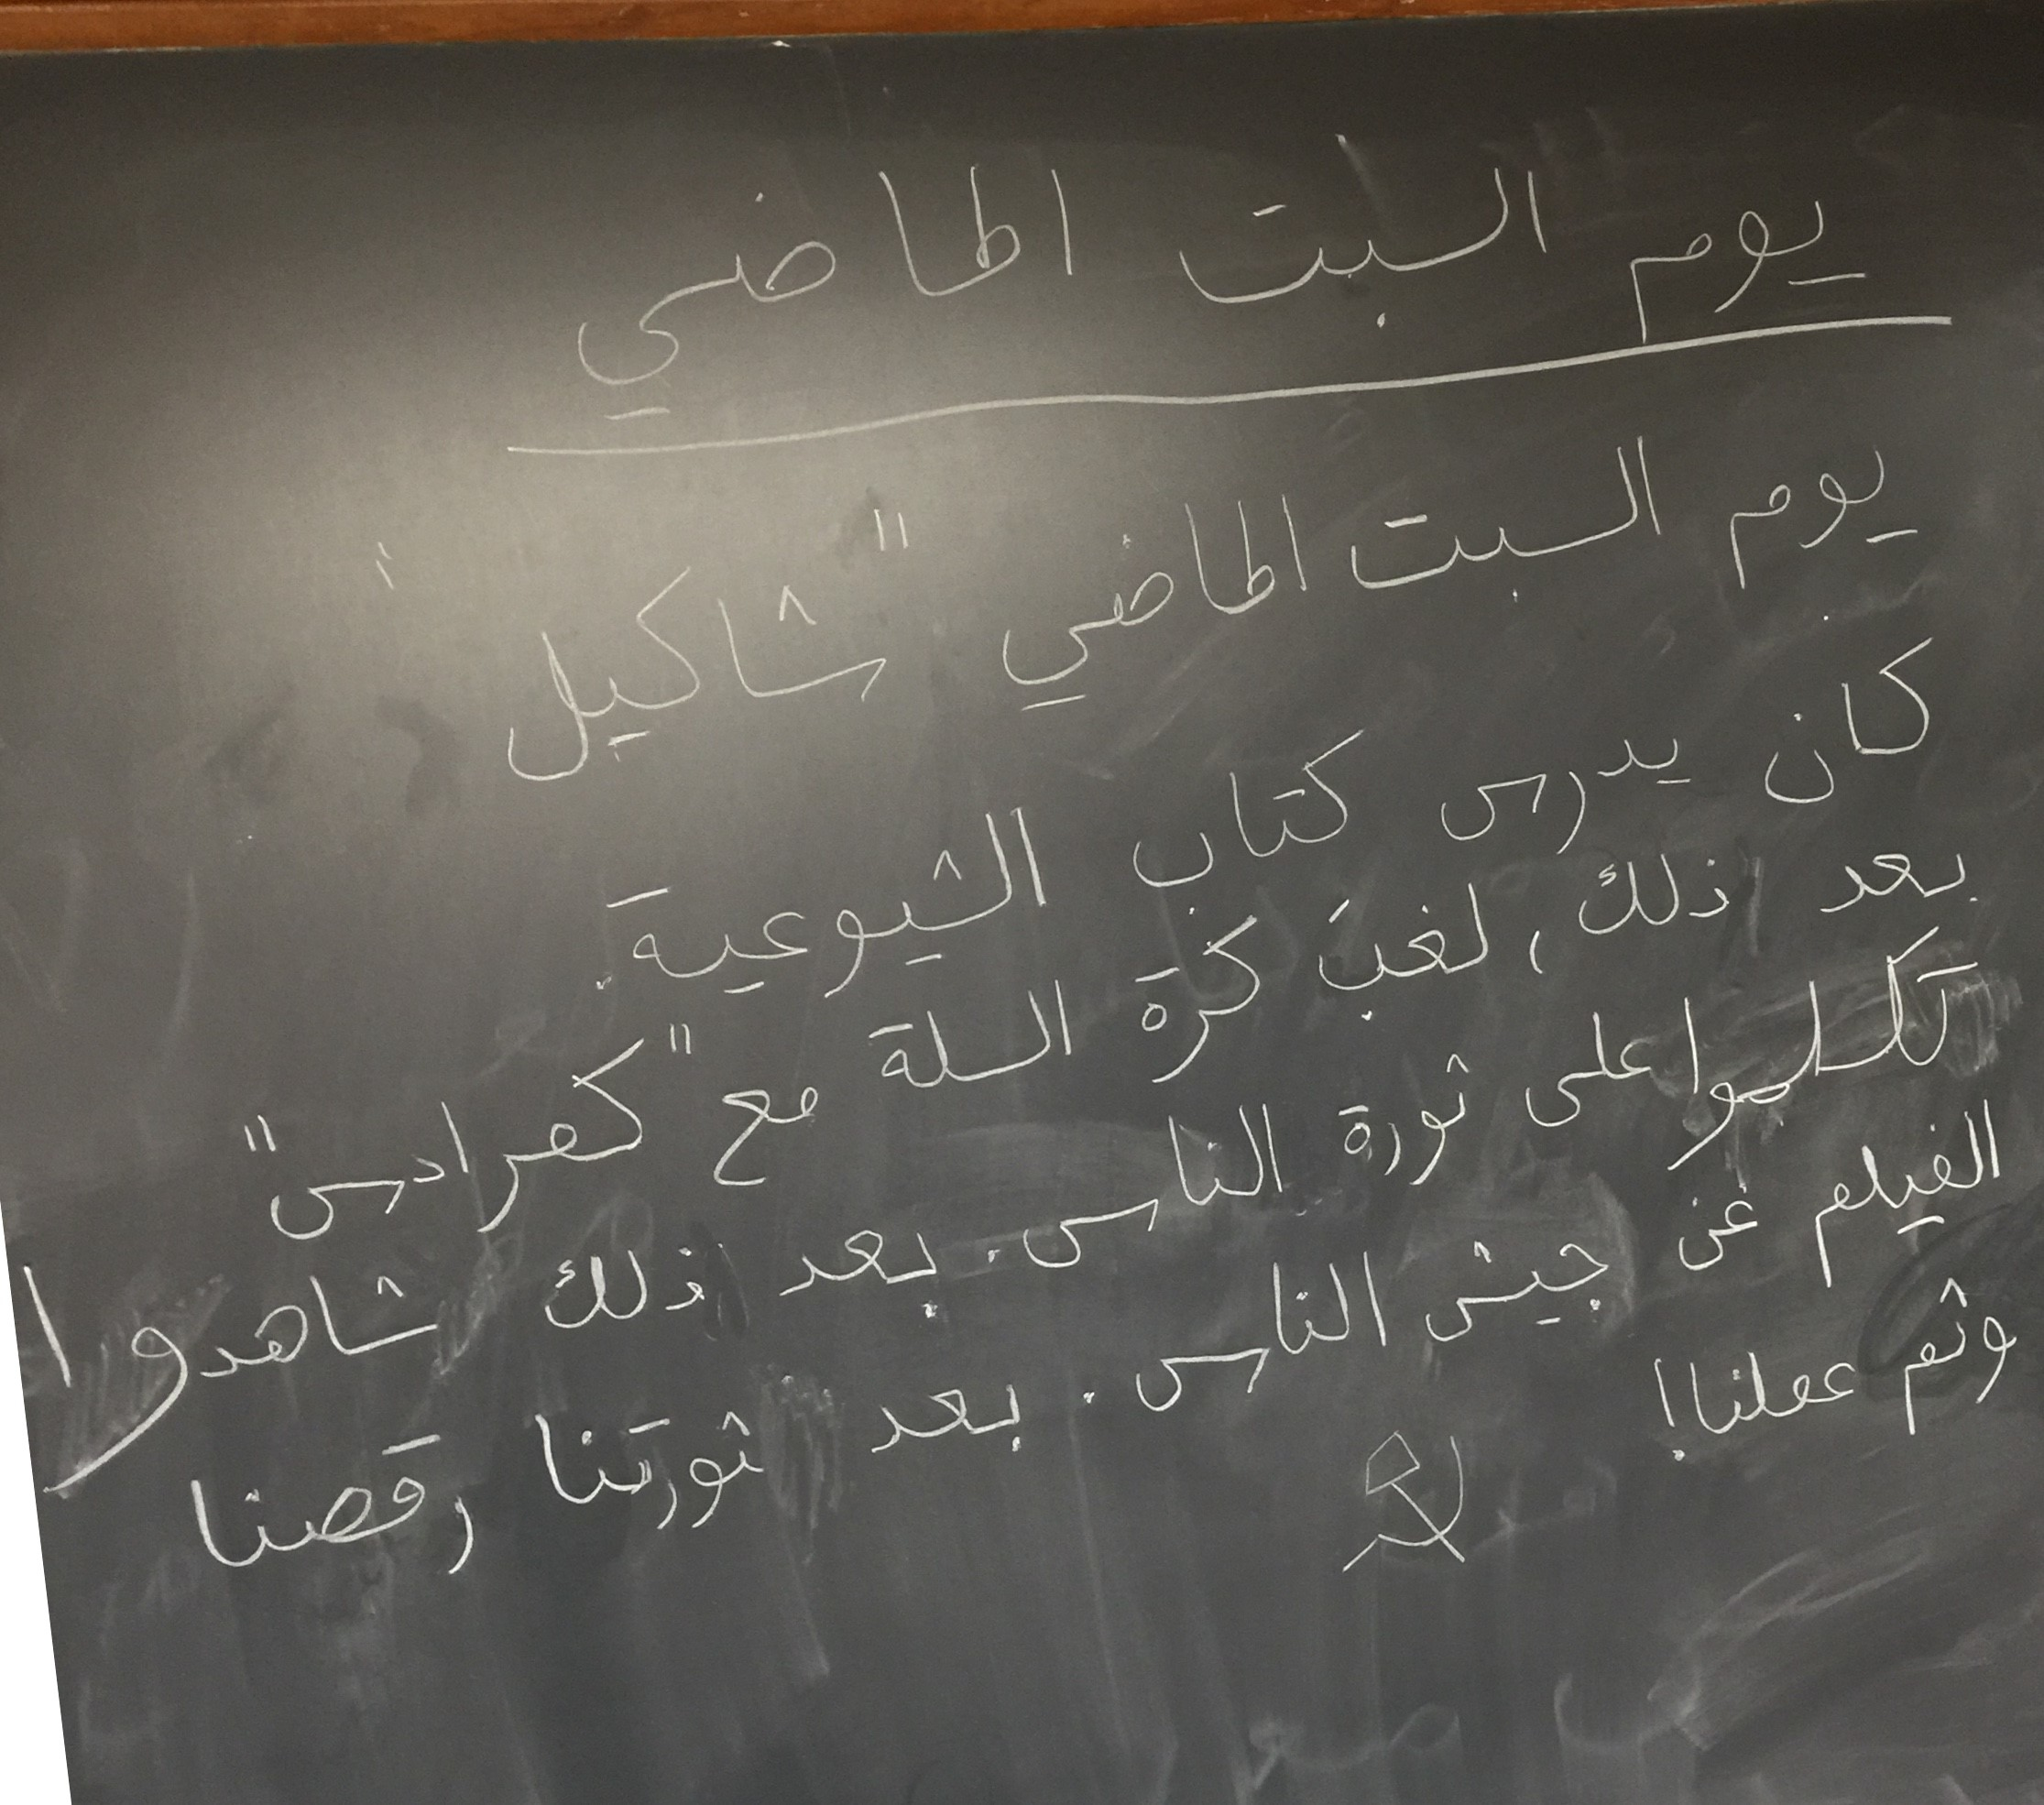 Arabic writing on the blackboard